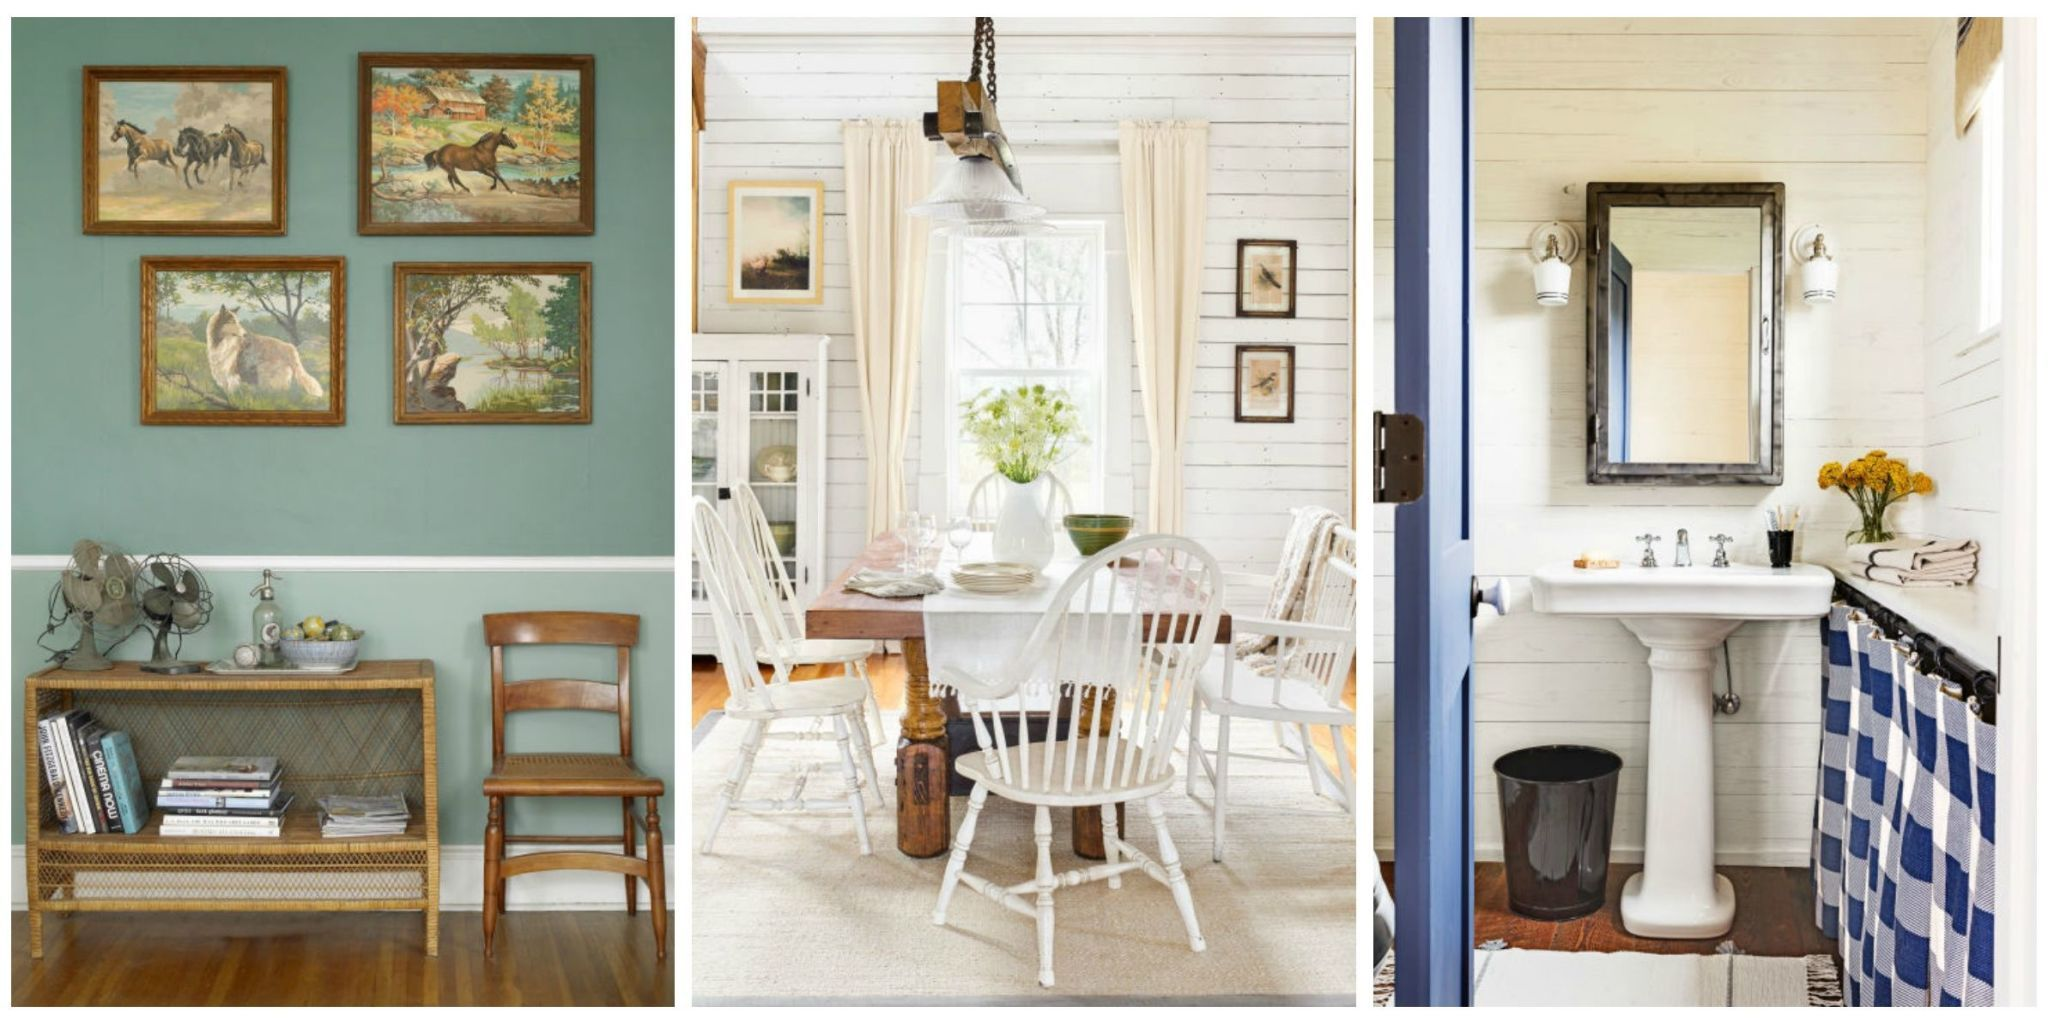 Small Decorating Projects Can Freshen Up Your Home And Be Inexpensive. Try  One Or Two Of These Budget Friendly Fixes For An Instant Update!